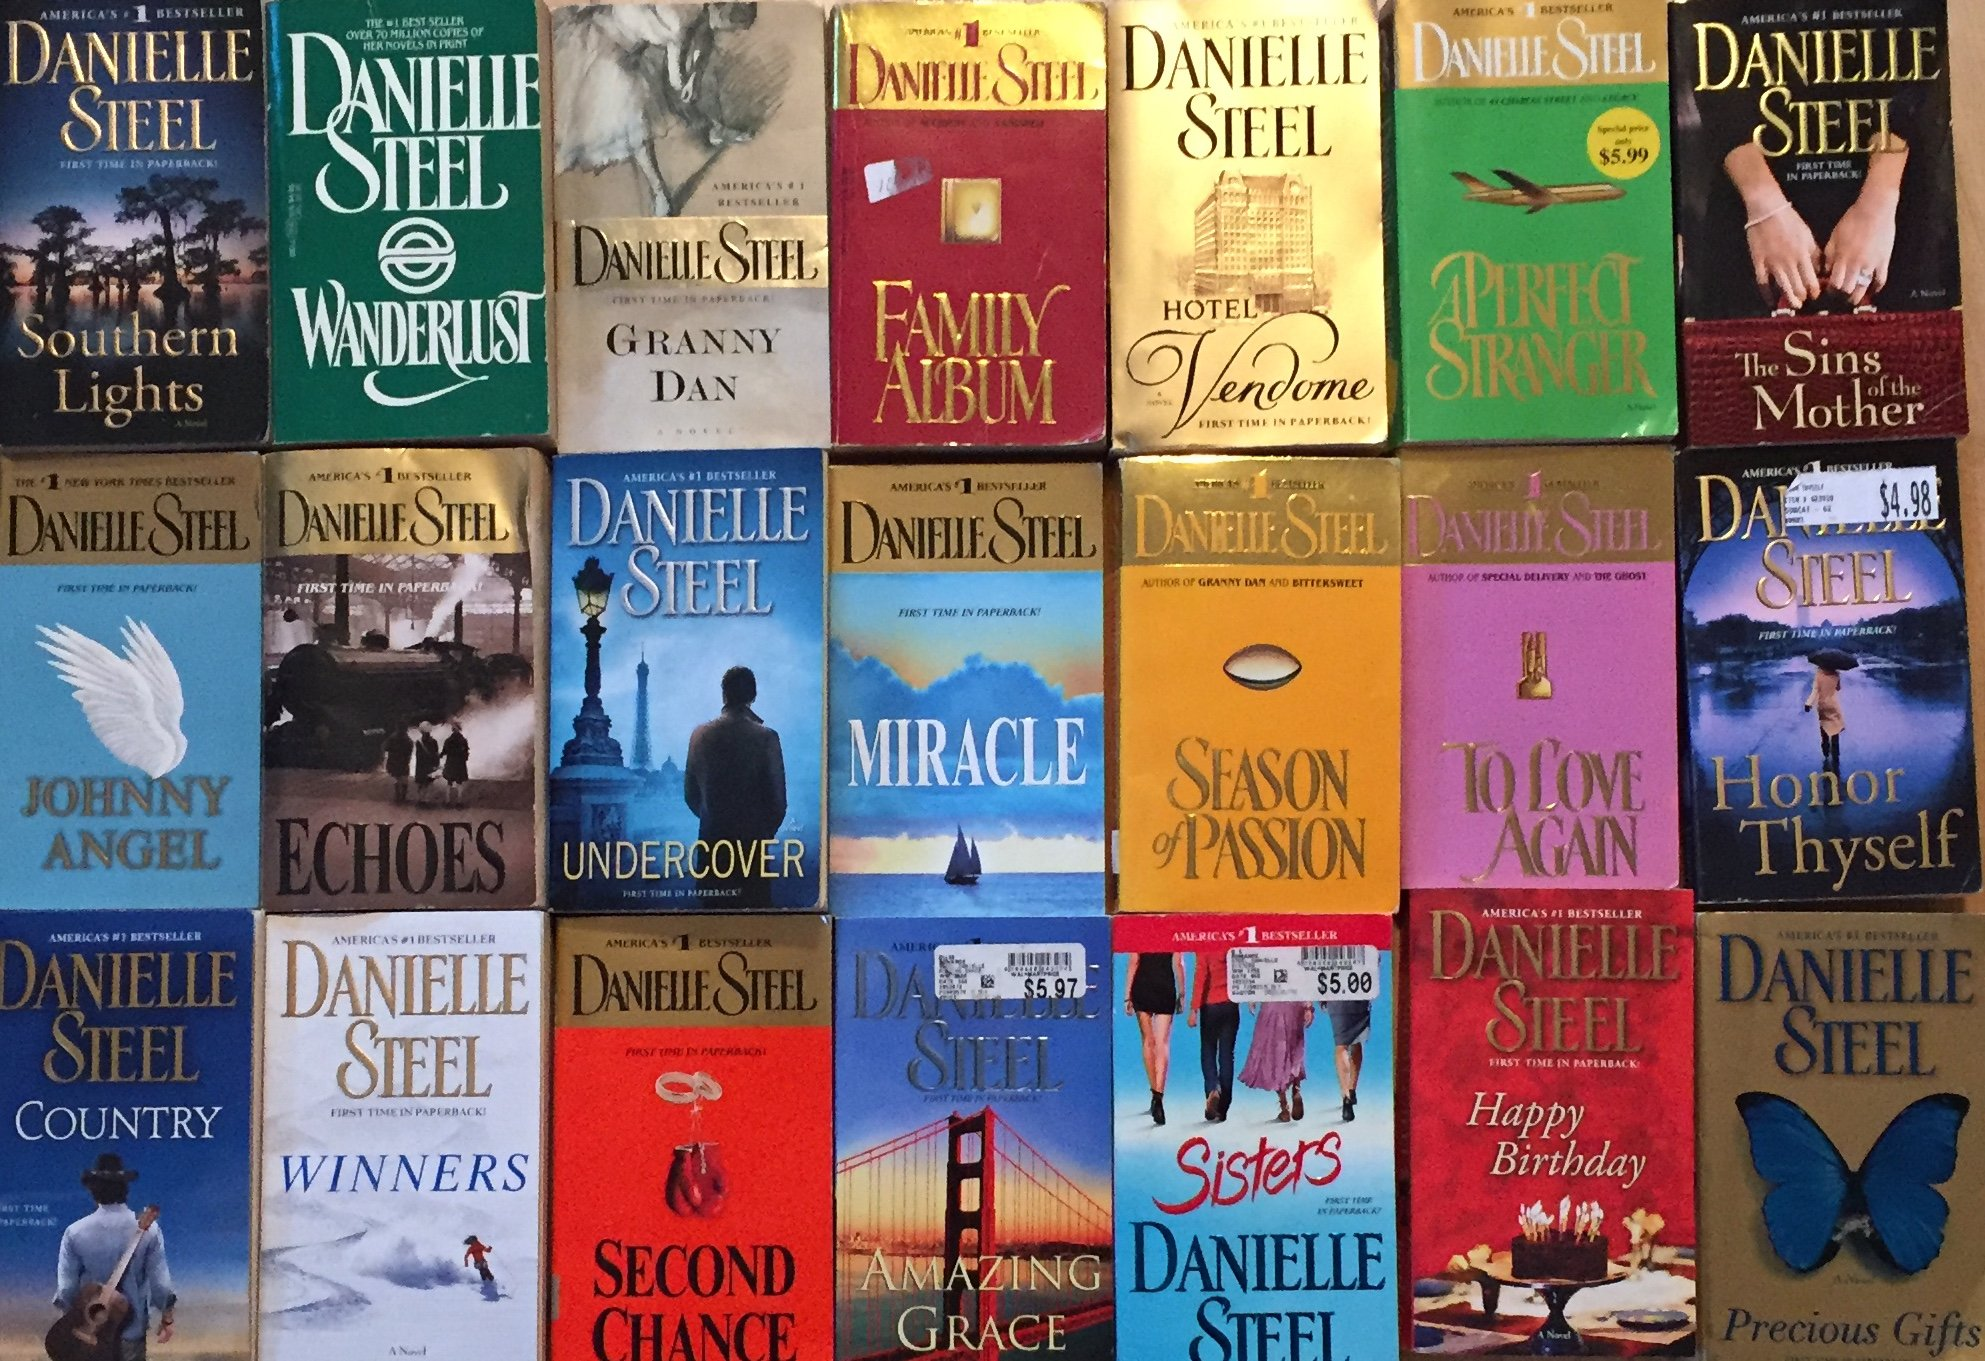 Danielle steel ebook collection free download.